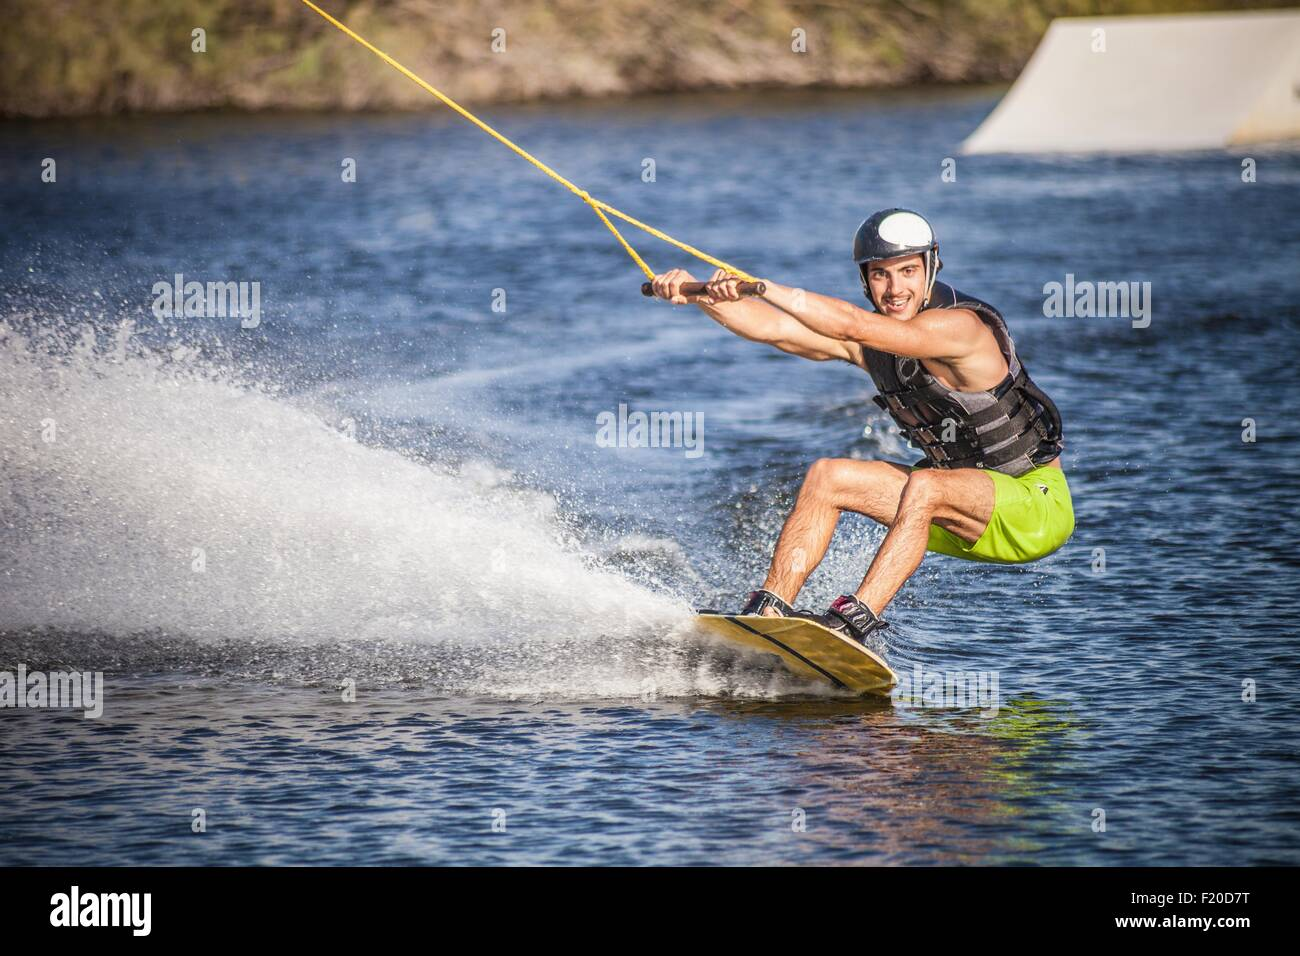 Mid adult man swerving on wakeboard in sea, Cagliari, Sardinia, Italy - Stock Image